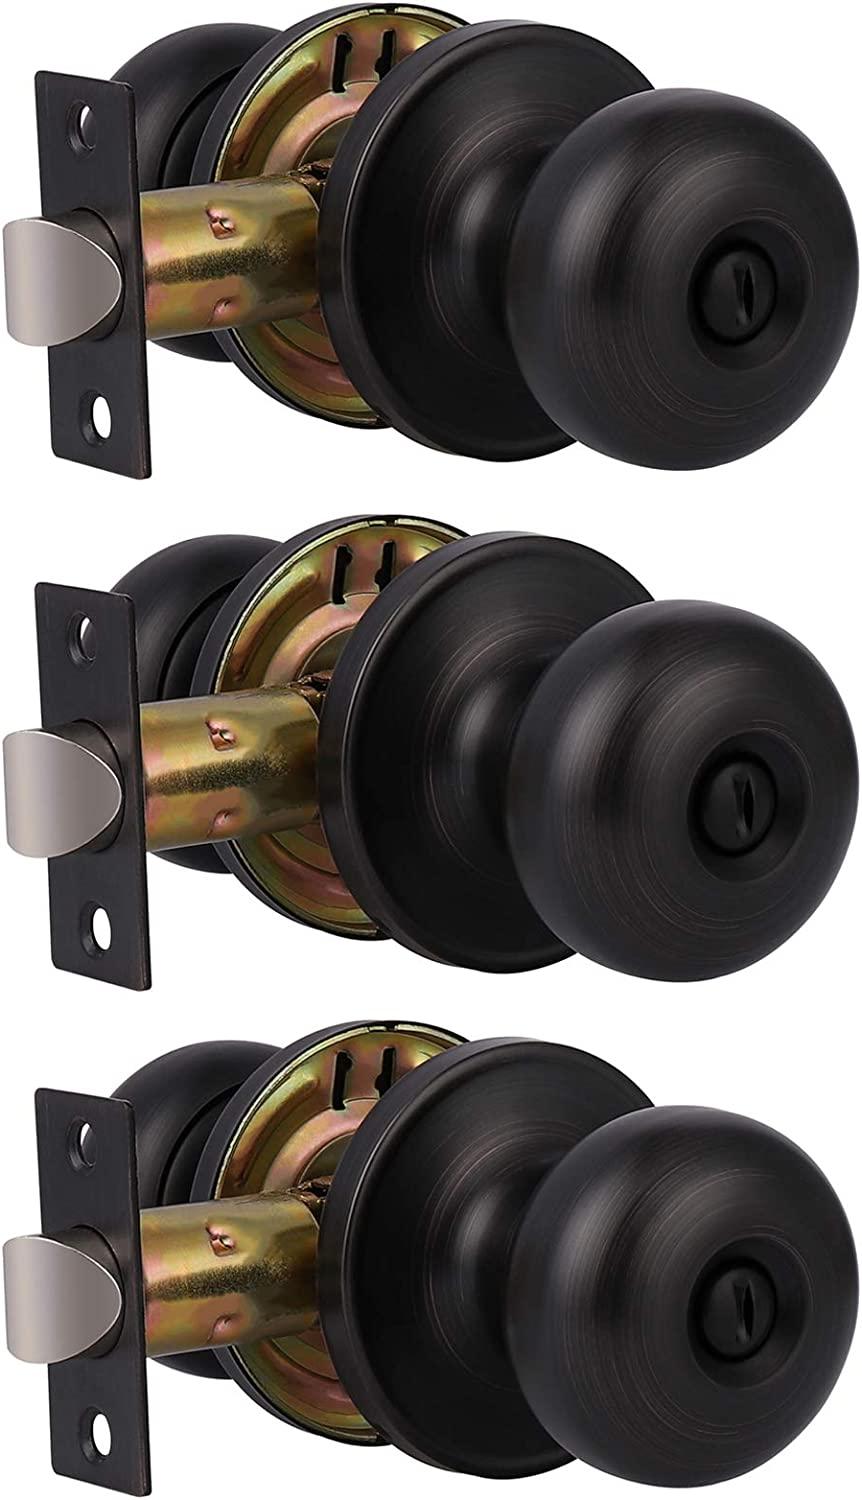 GOBEKOR 3 Pack High order Privacy Door Knobs At the price Doo Oil Rubbed Bronze Interior